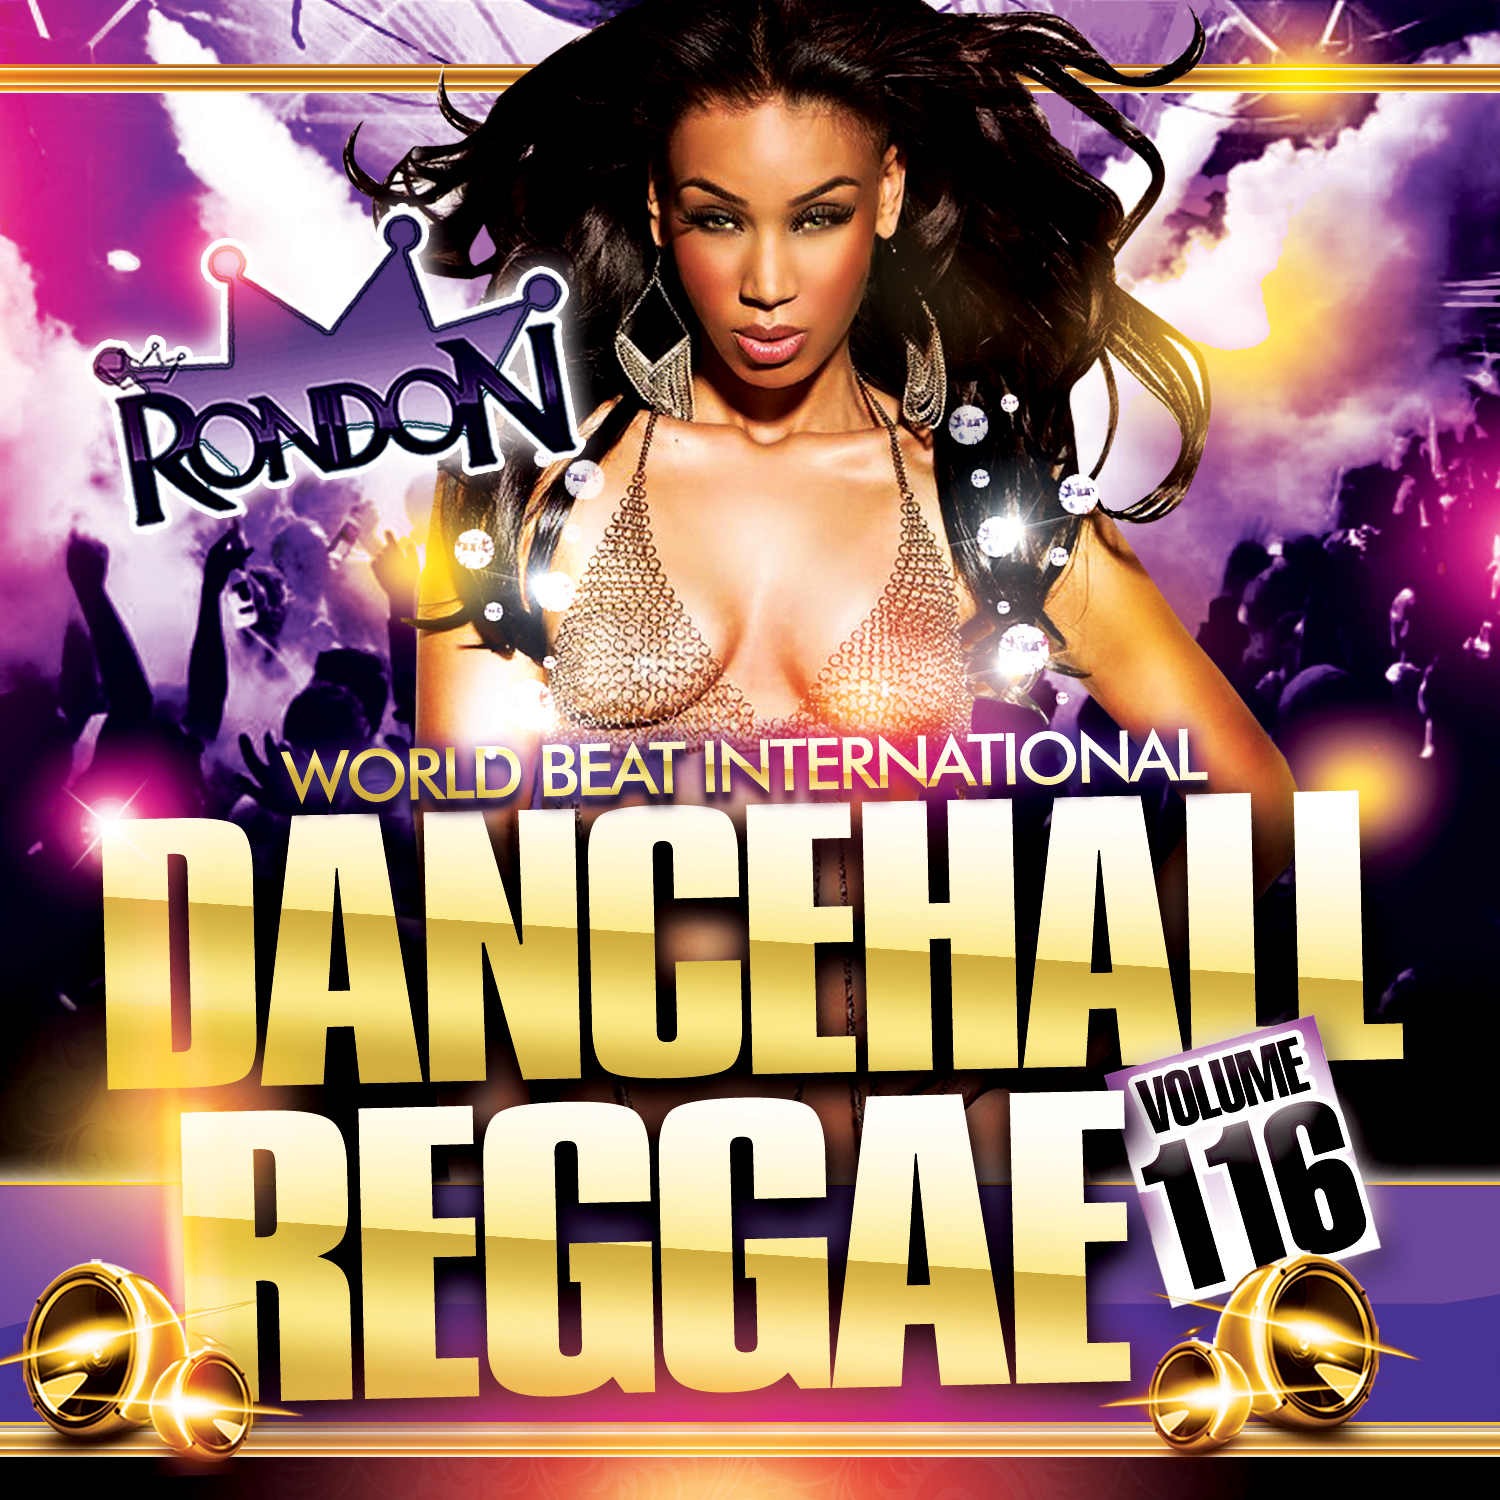 DANCEHALL REGGAE VOL. 116 (CD ONLY)